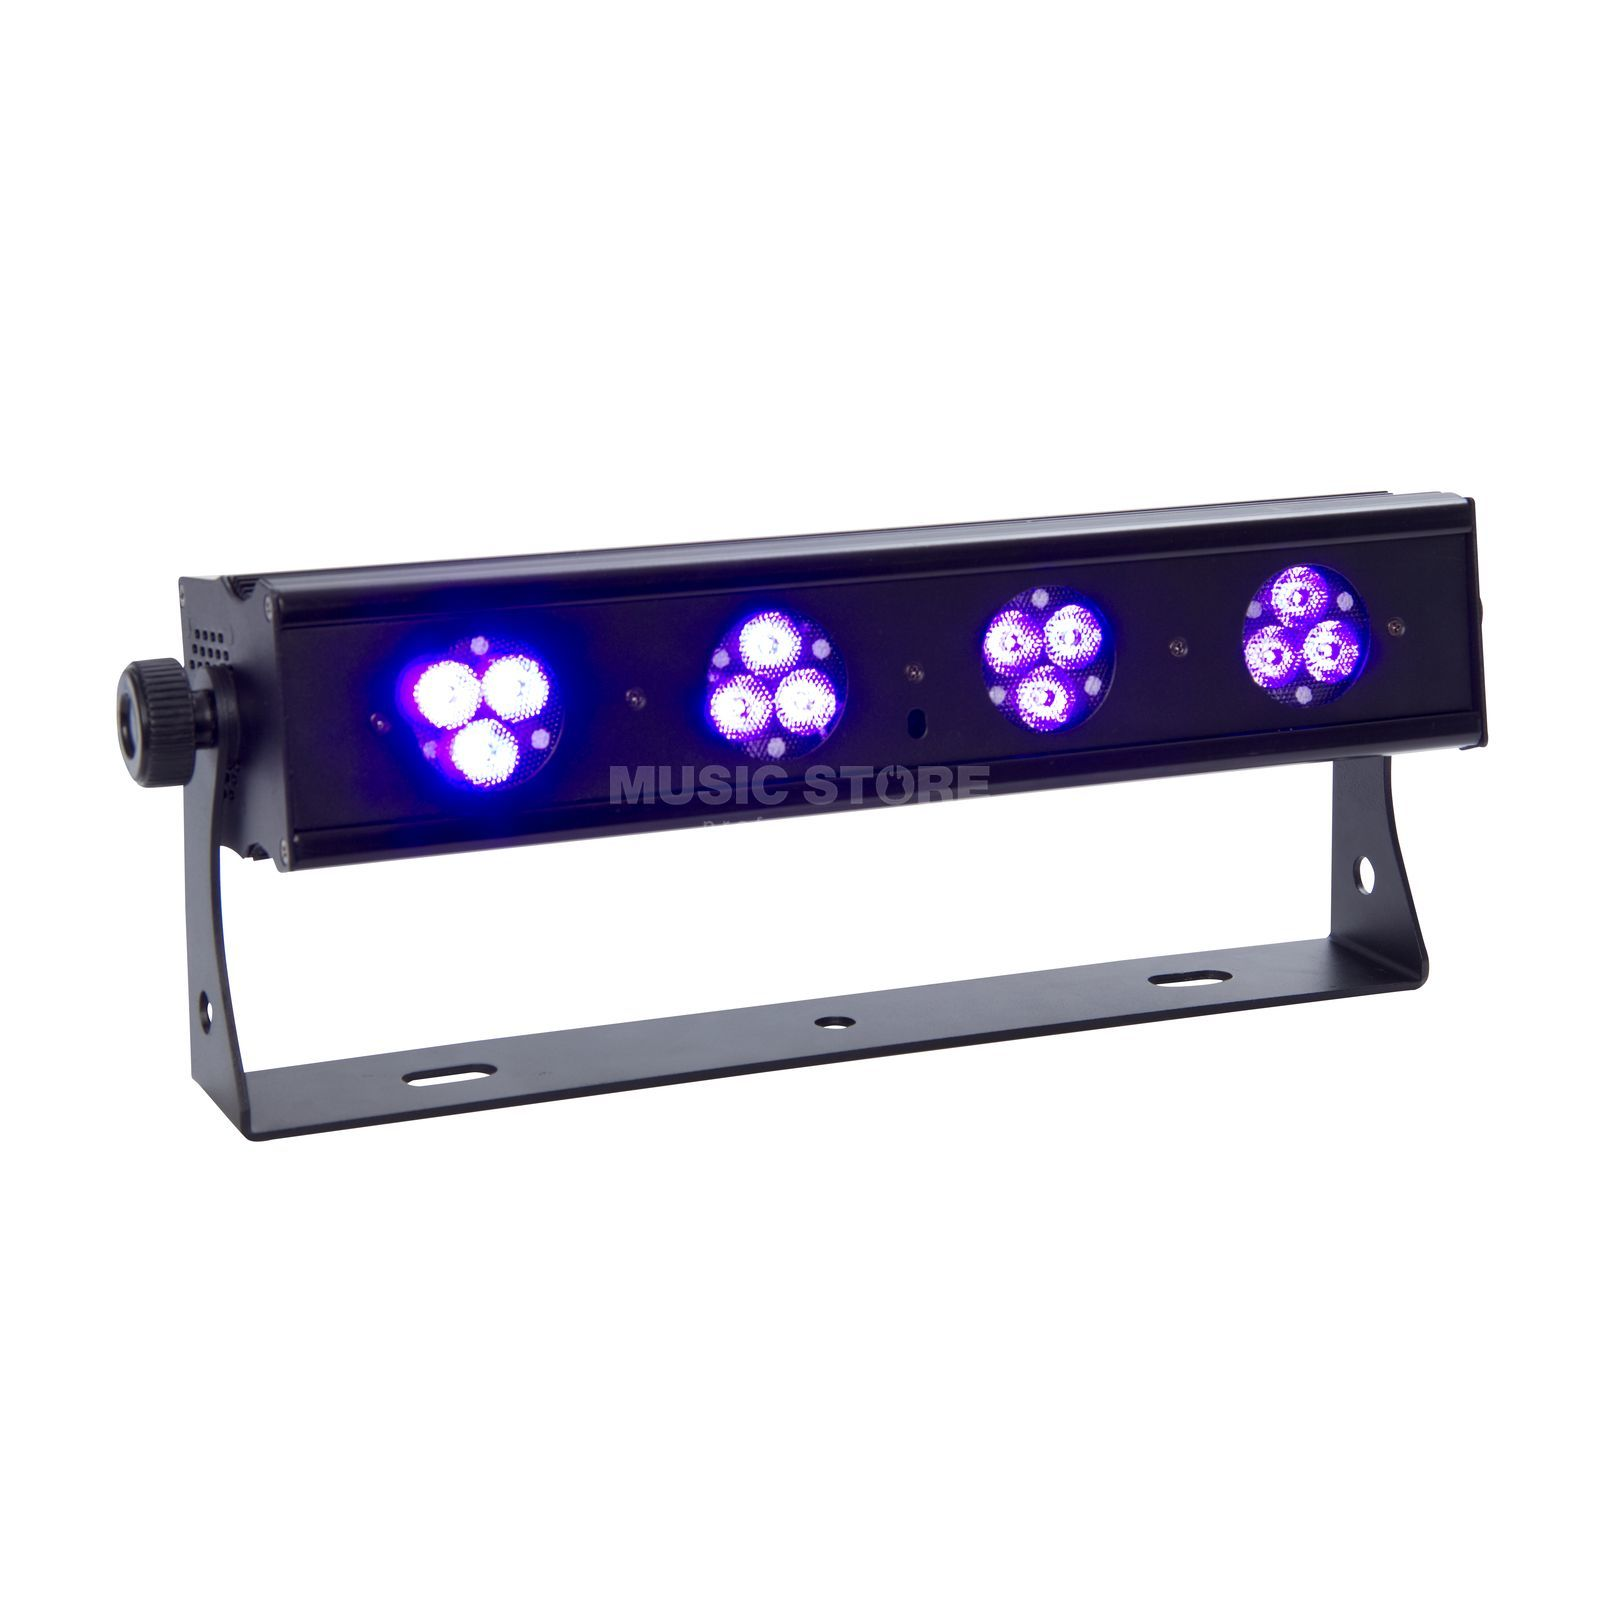 lightmaXX Platinum UV-BAR LED short 12x 1W UV, IR-Remote Control Produktbillede